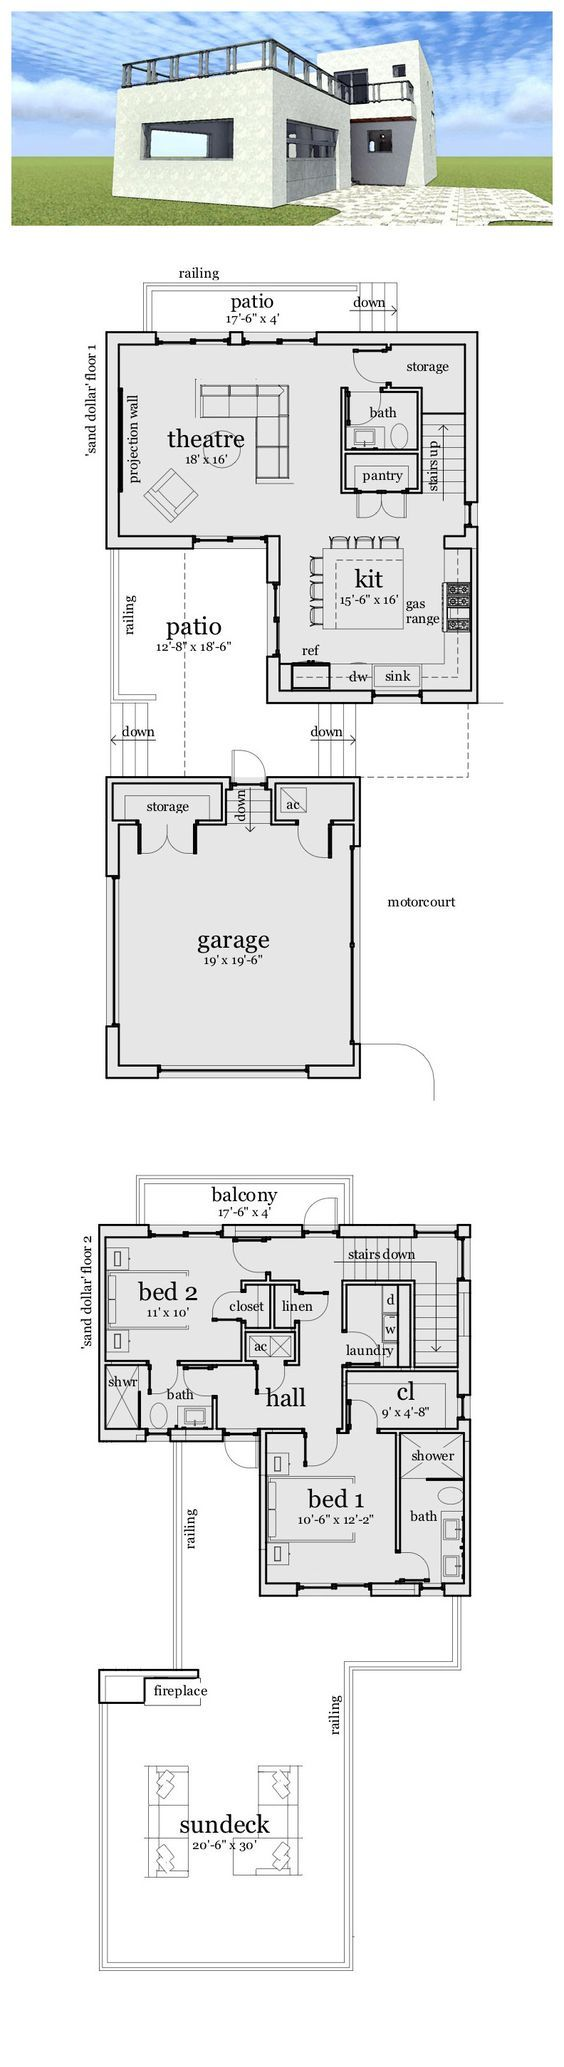 Modern House Plan 70805 | Total Living Area: 1476 sq ft, 2 bedrooms & 2.5 bathrooms. The exterior features a rooftop living space to provide excellent views in almost all directions. The lower level is simple with a large theater and chef's kitchen. #modernhouse #houseplan